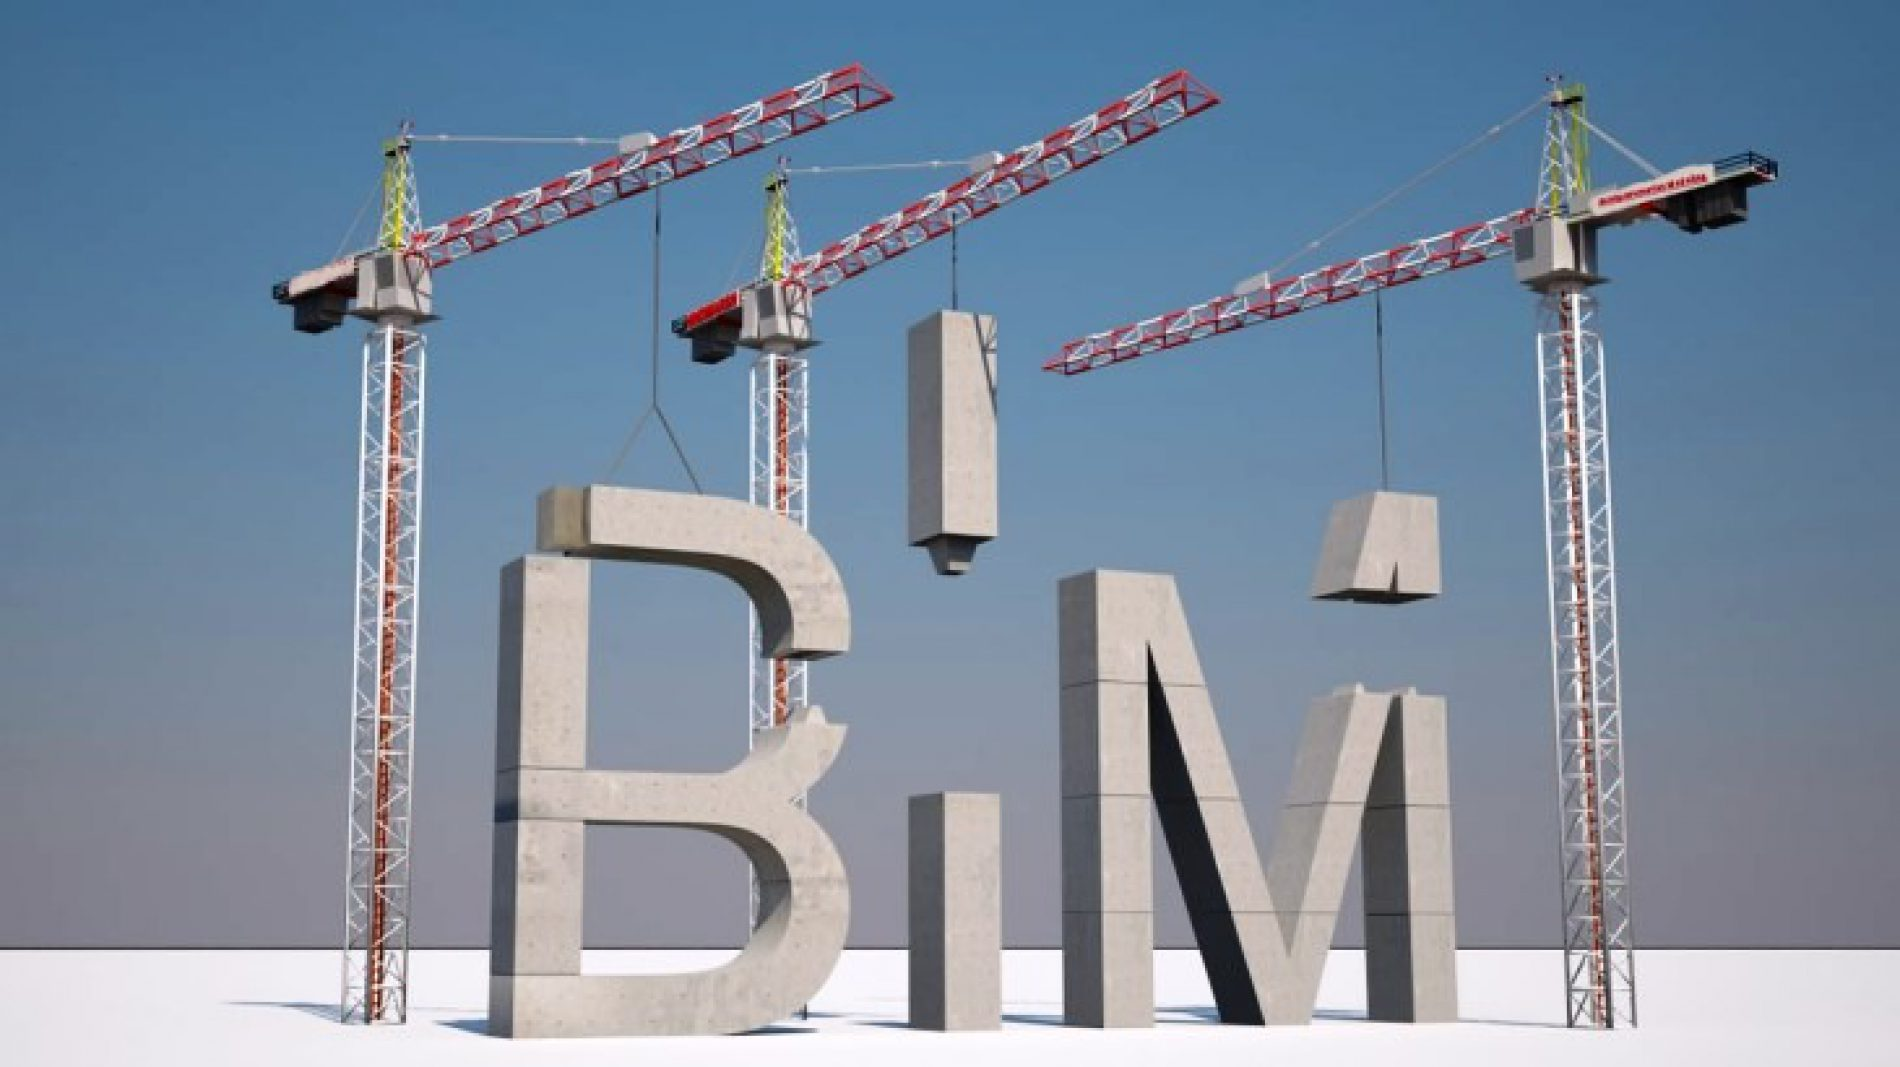 Digital&BIM a Bologna